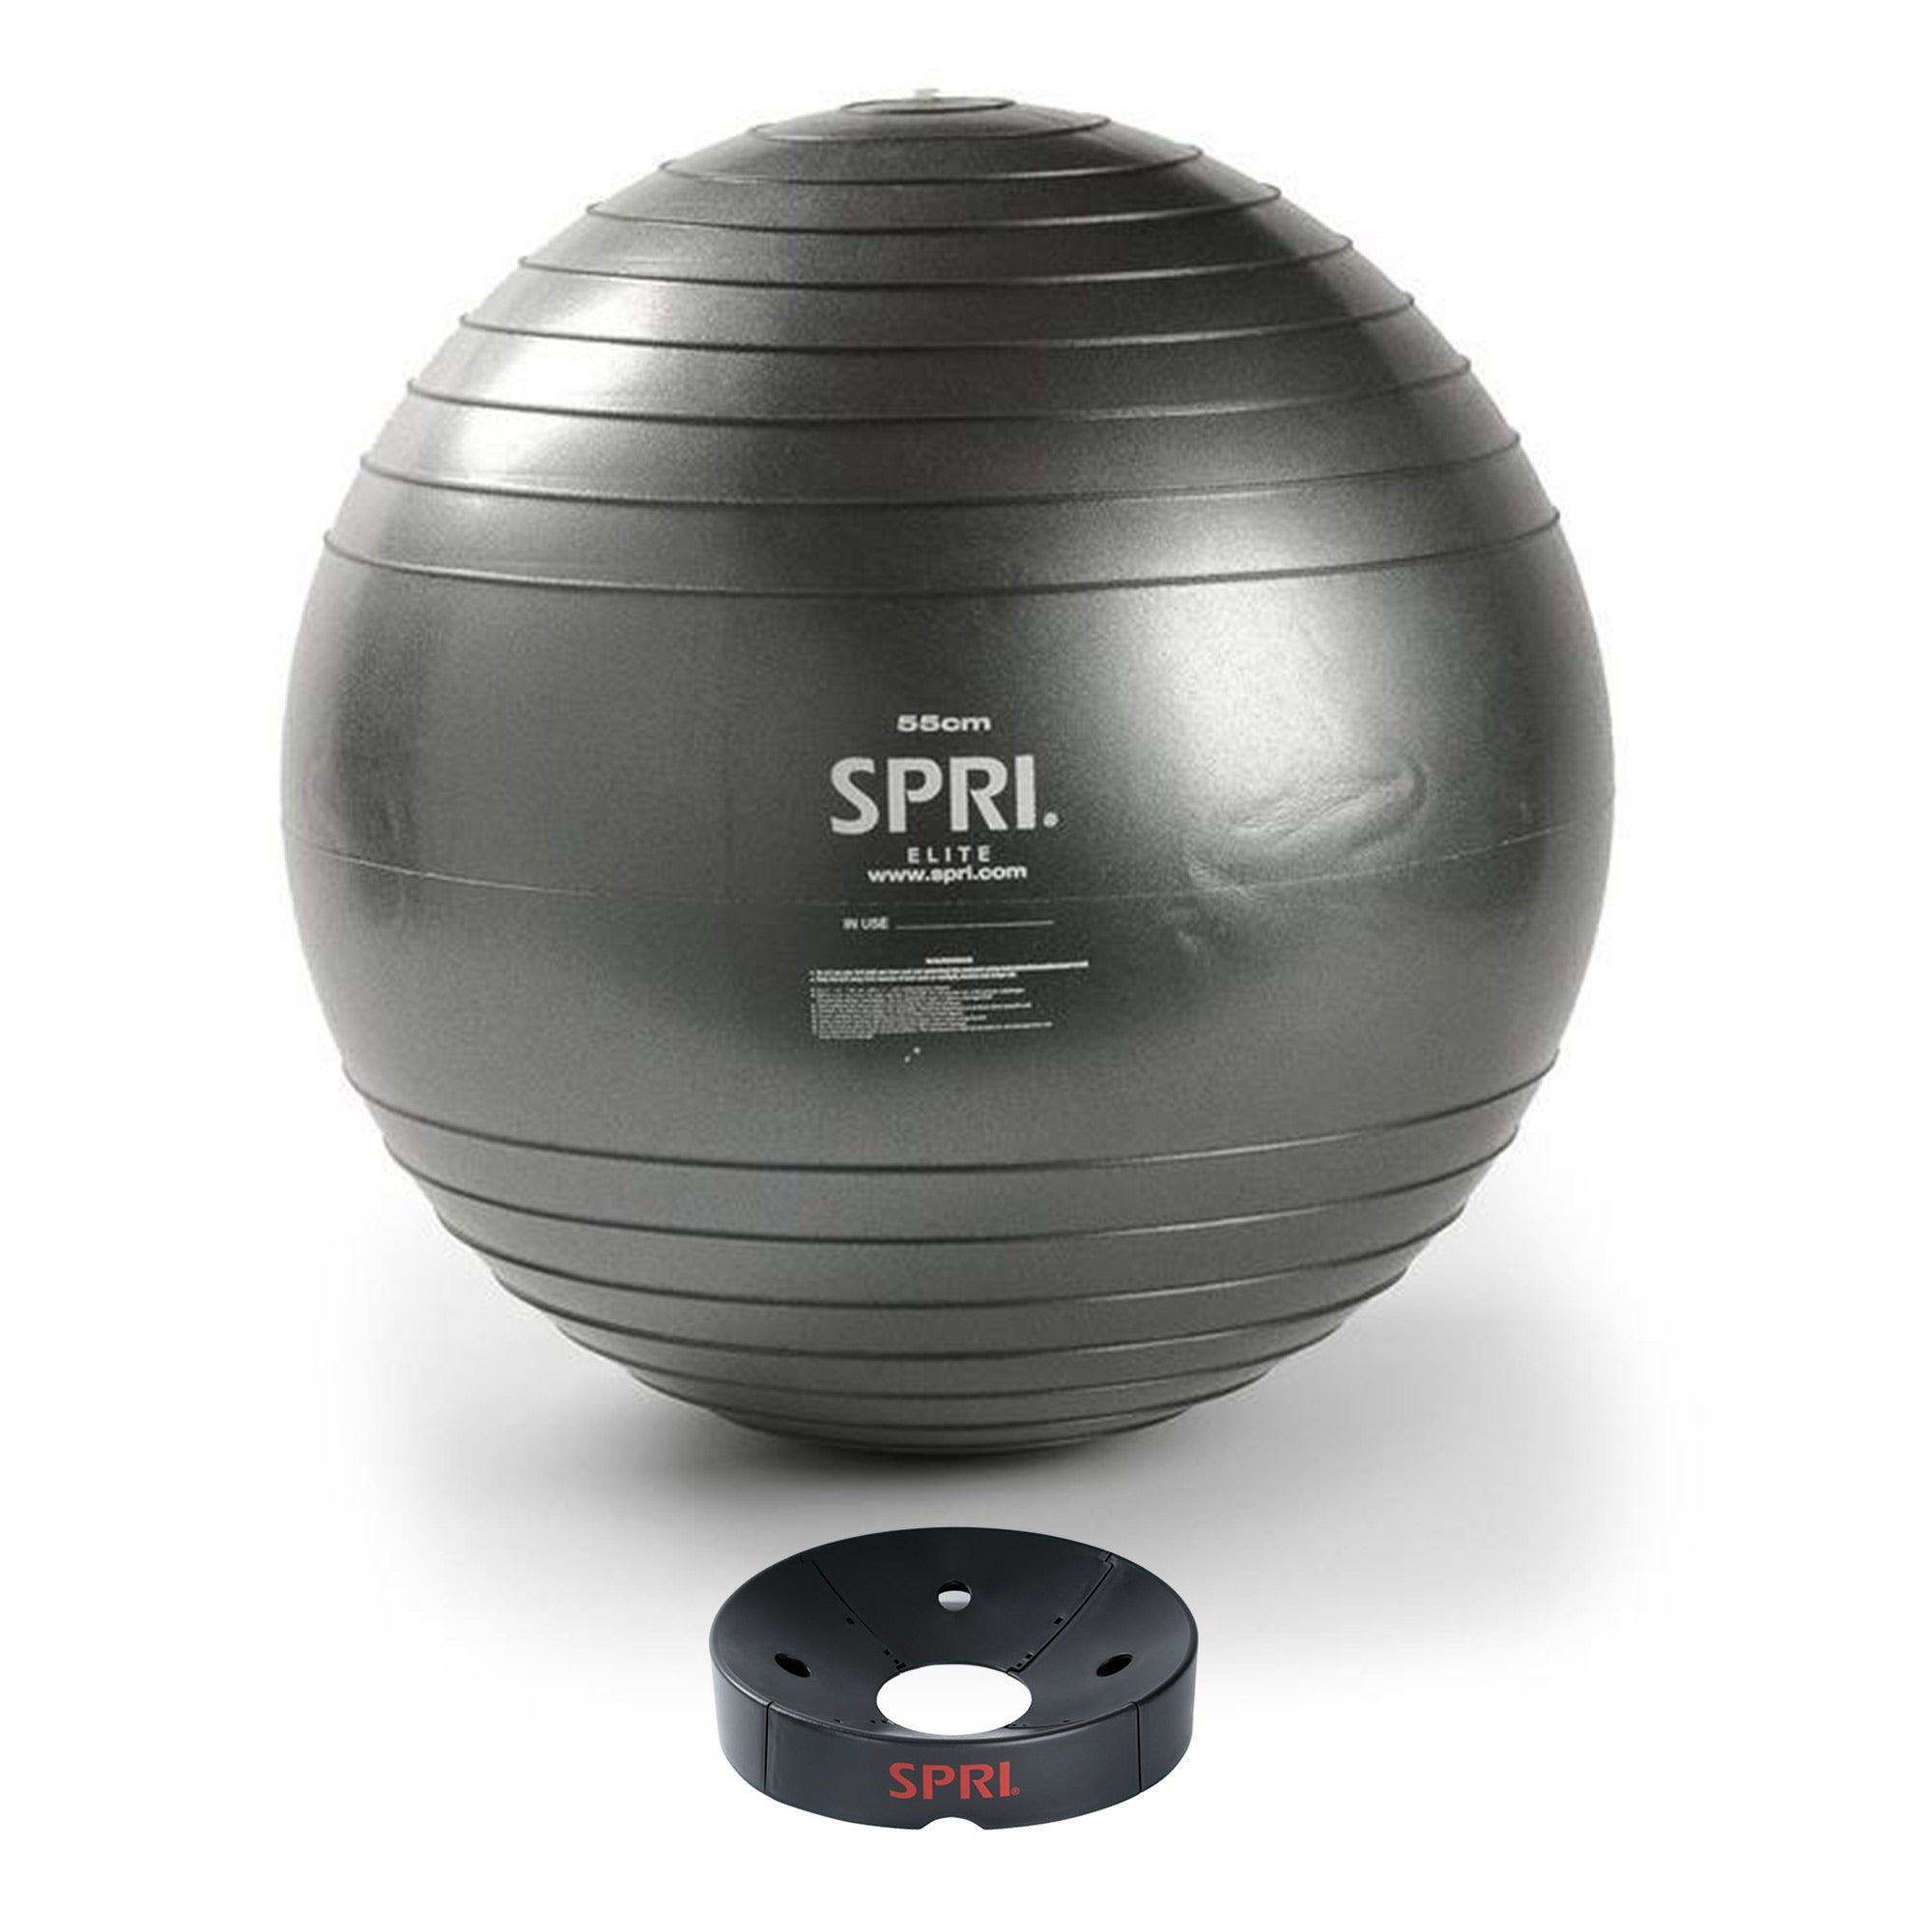 "This 55cm Elite Xercise Ball™ & Base Kit is ideal for rigorous use and tough enough to withstand the demands from a gym. The 55cm ball has slow-deflate anti-burst technology up to 500lbs and ideal for heights 5' - 5'7"". The included Balance Ball Base quickly and easily keeps the ball in place for storage or for additional stability while working out. A $79.96 value! Does not include an inflation pump."